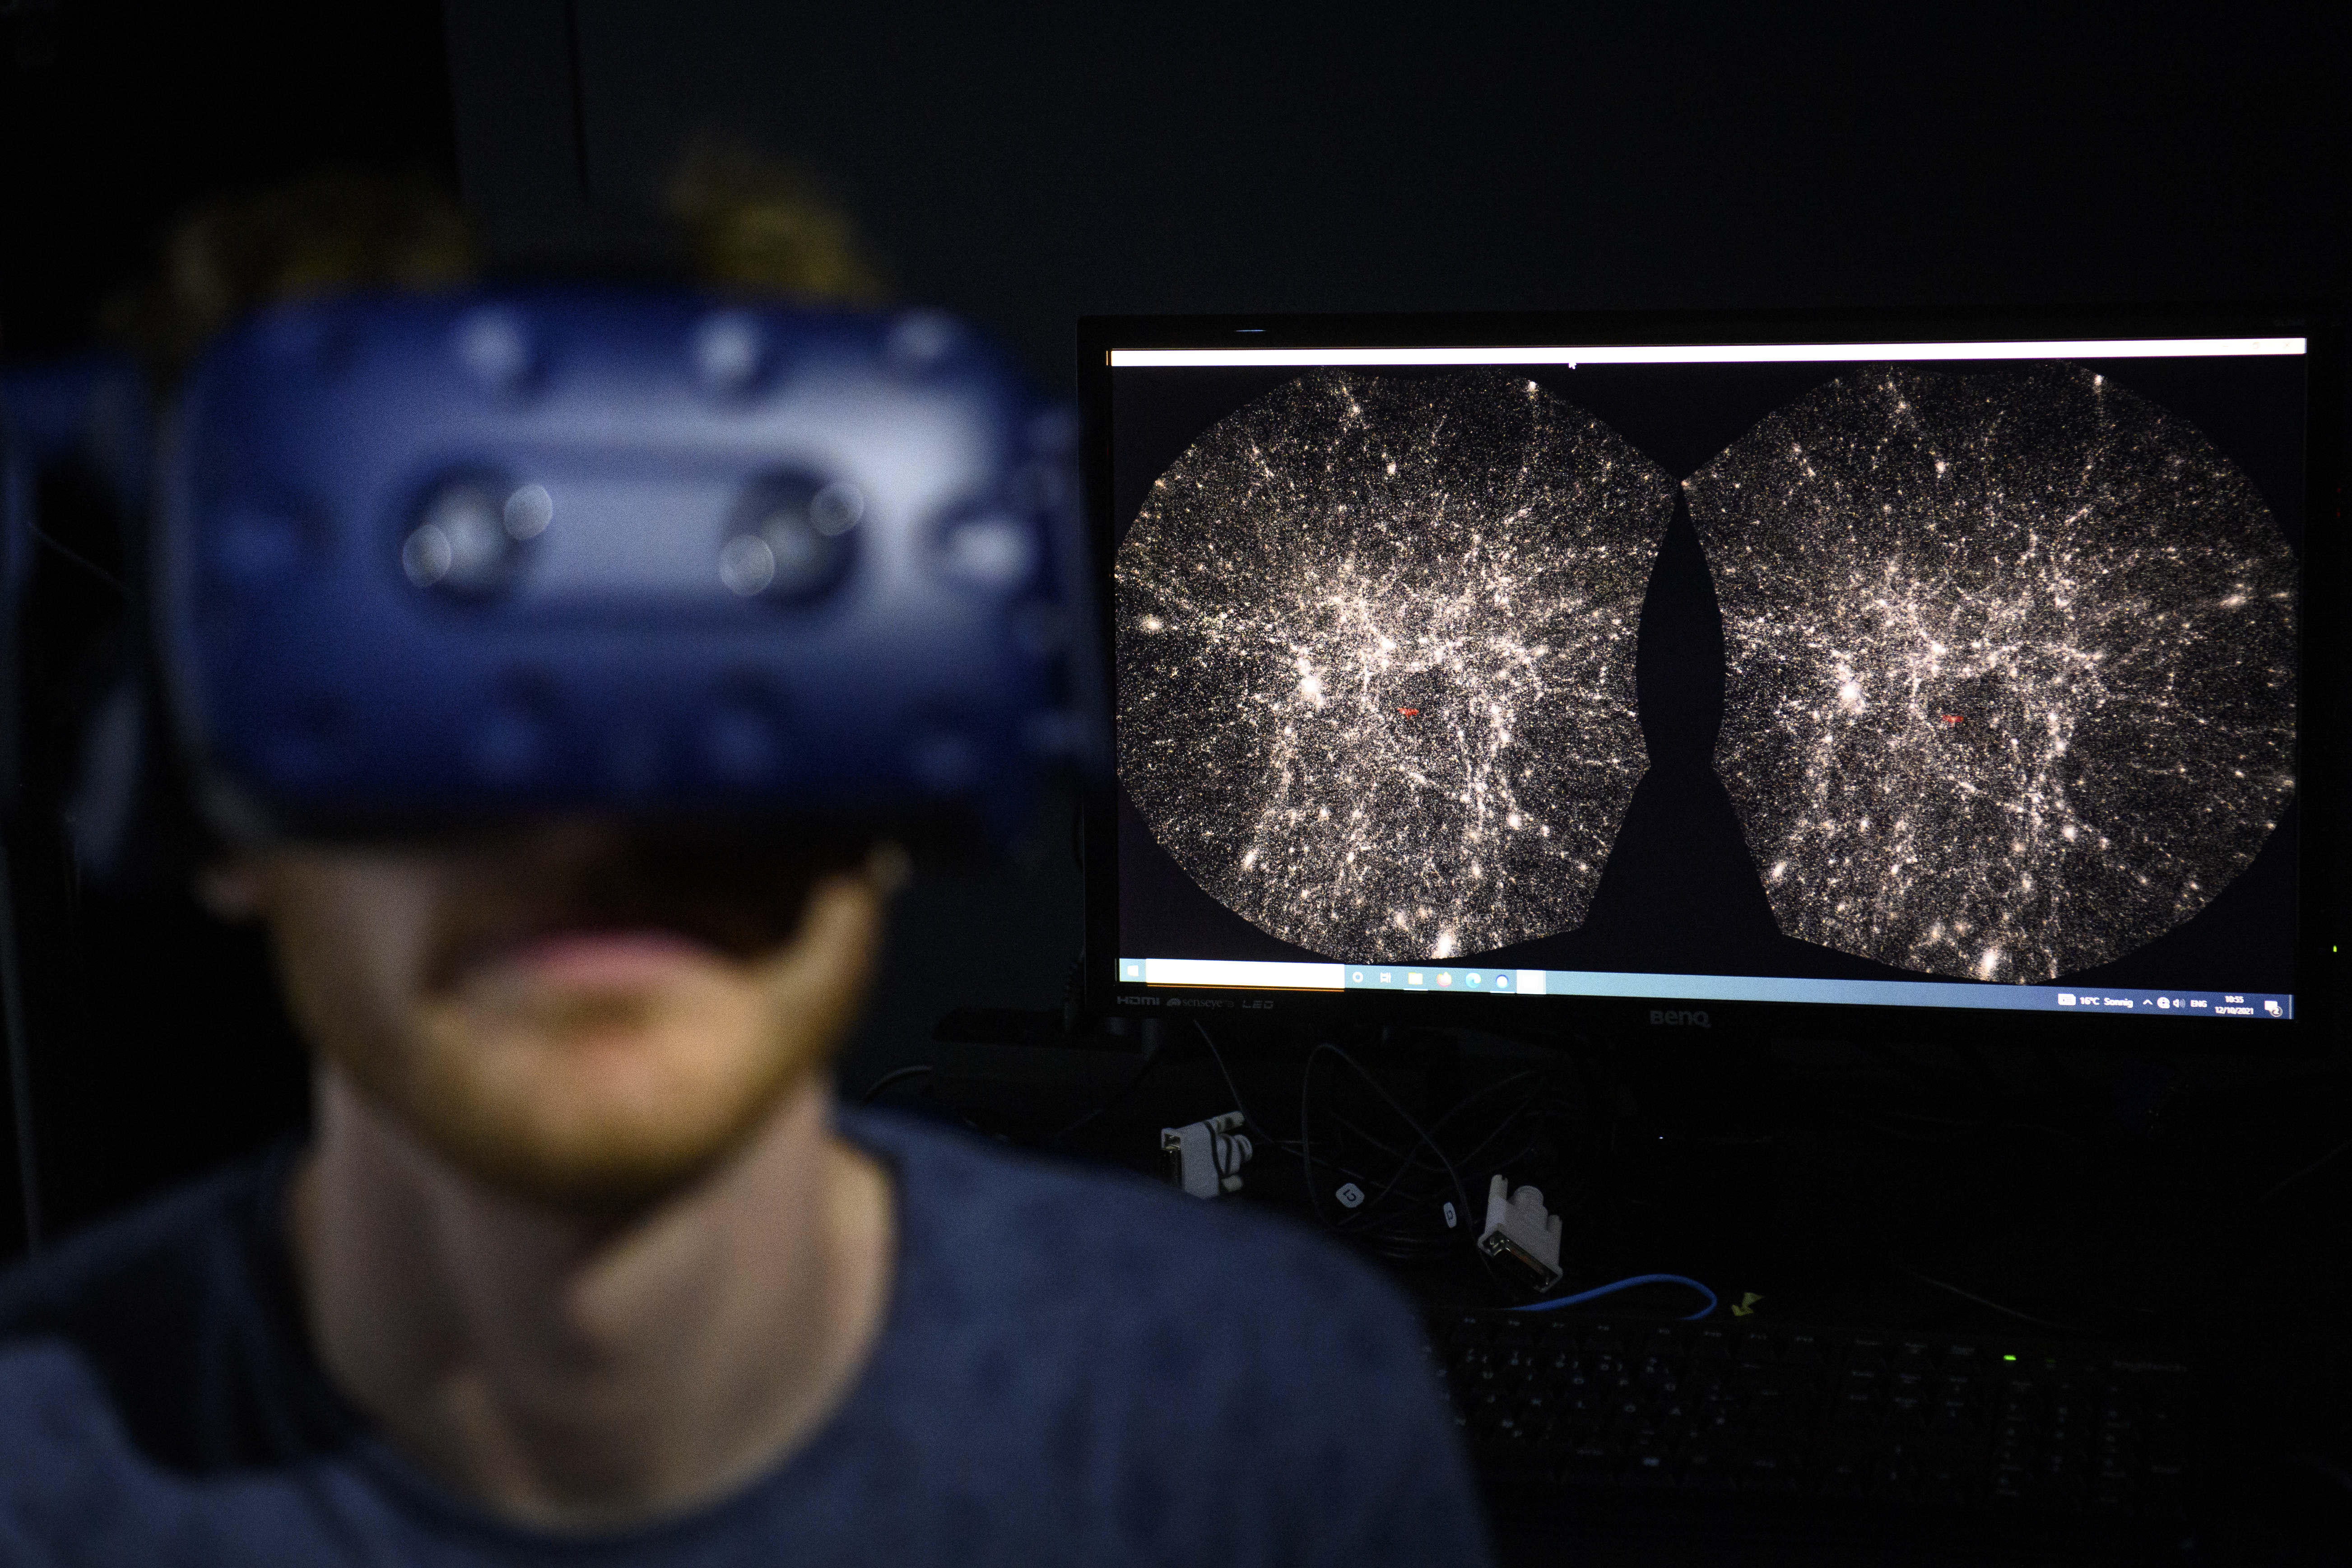 Software engineer Hadrien Gurnel uses a virtual reality helmet to explore the most detailed 3D map of the universe with the virtual reality software VIRUP — Virtual Reality Universe Project. It was developed by Swiss Federal Institute of Technology (EPFL) scientists of the Laboratory of Astrophysics at EPFL's Laboratory for Experimental Museology (eM+) in St-Sulpice near Lausanne, Switzerland.